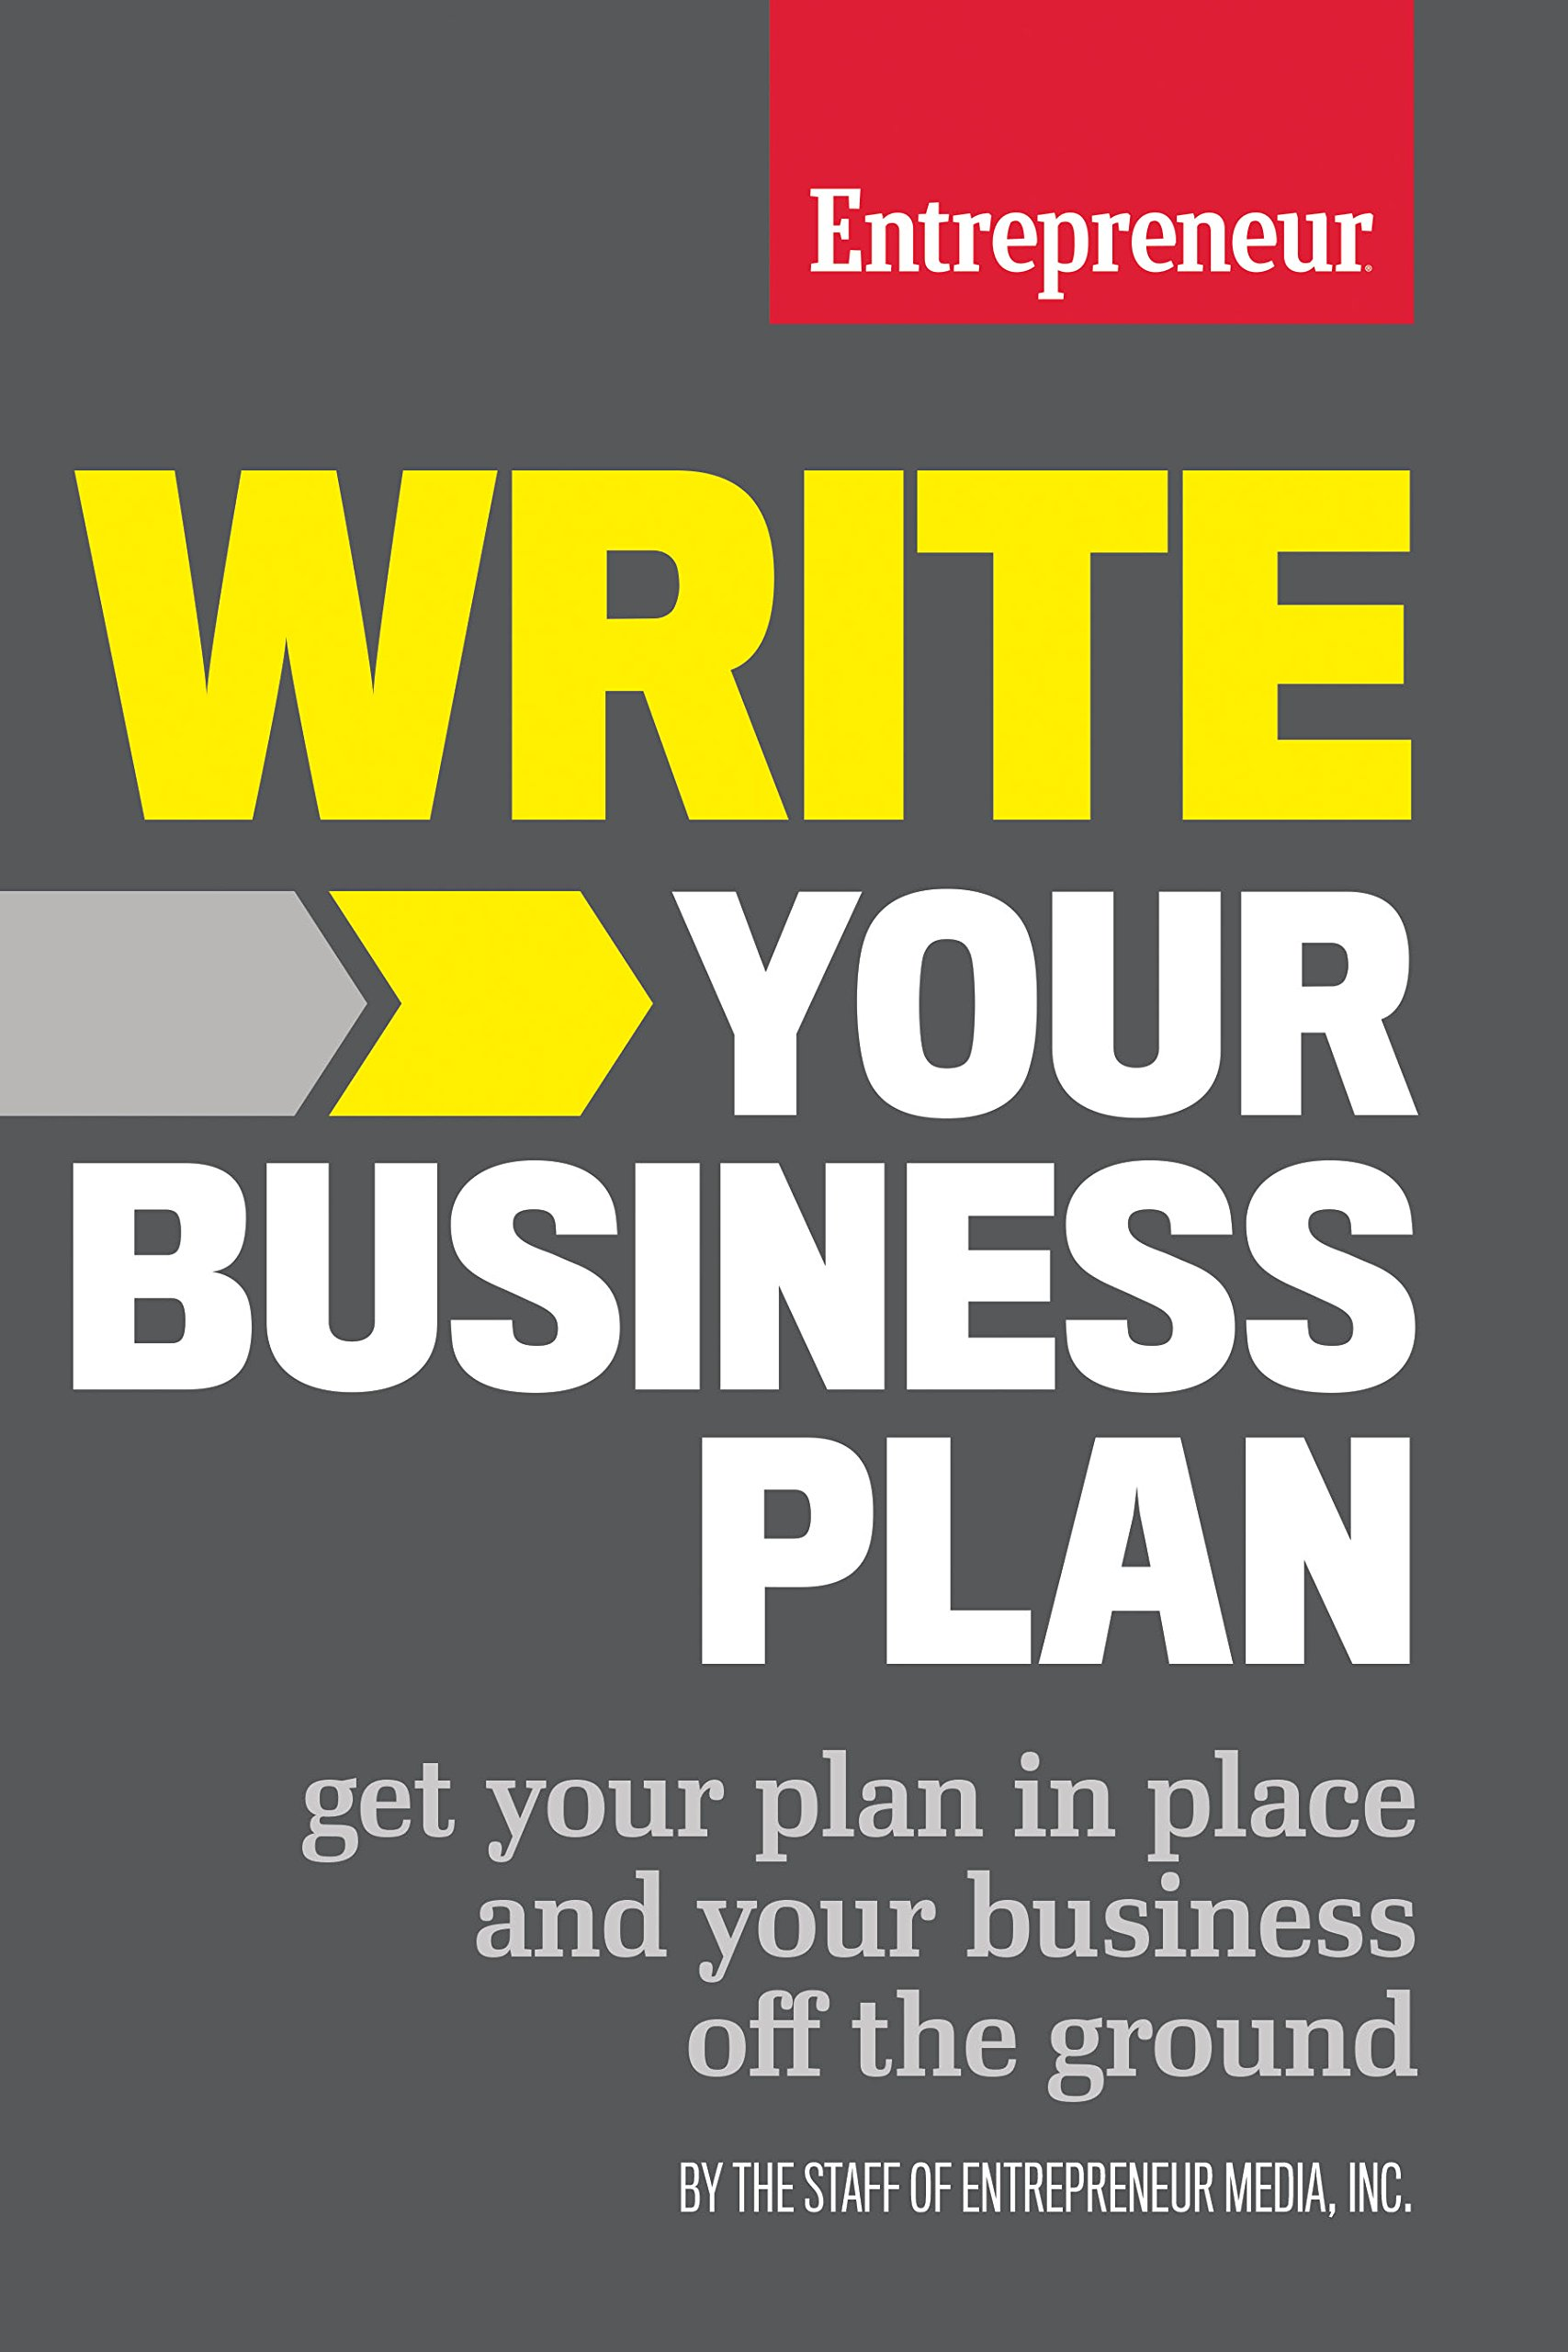 Amazon.com: Write Your Business Plan: Get Your Plan in Place and ...